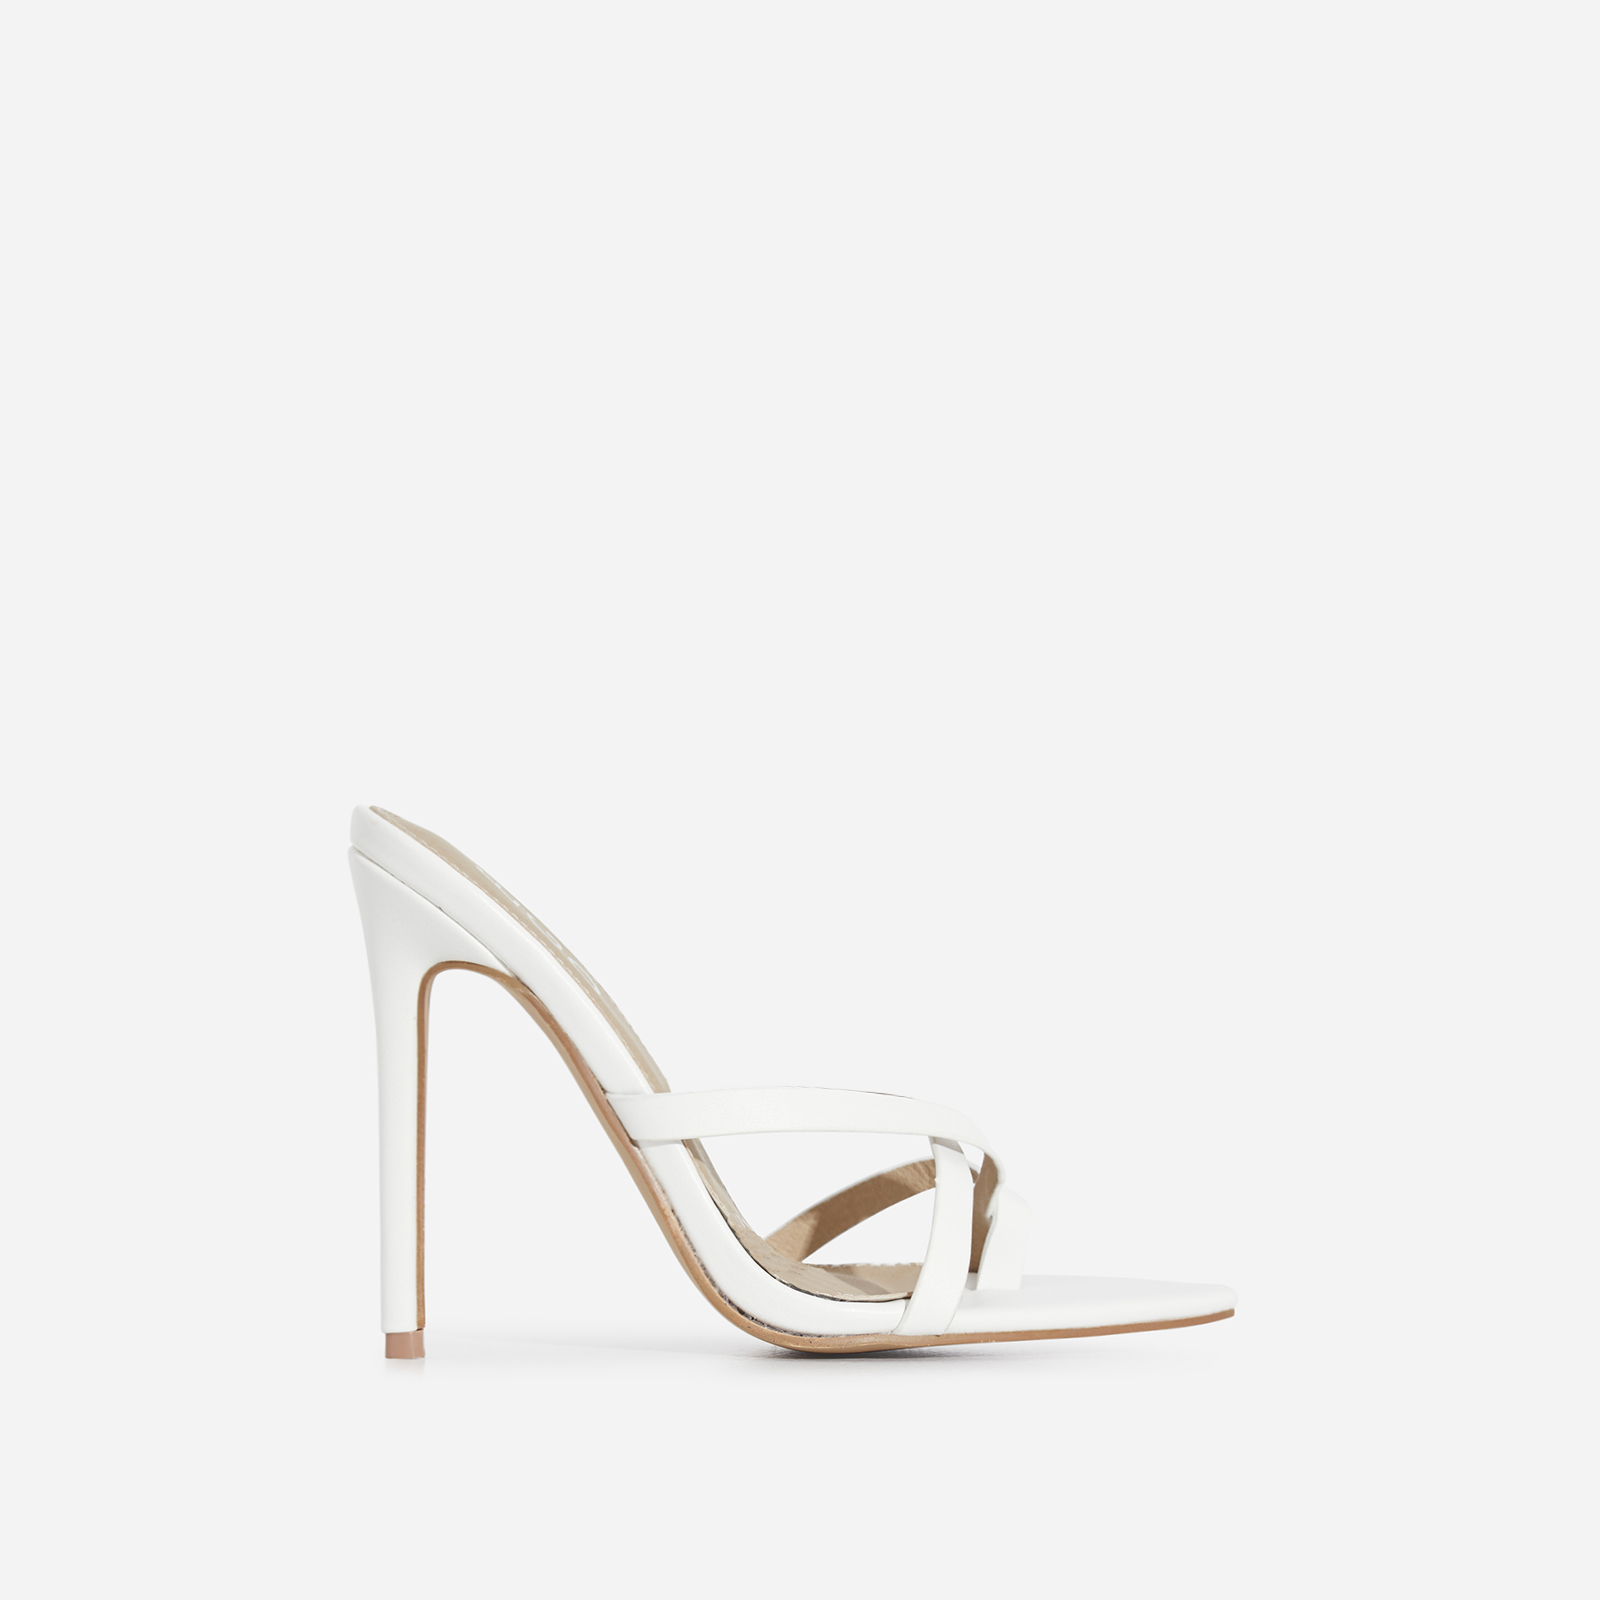 Julie Toe Strap Heel Mule In White Faux Leather